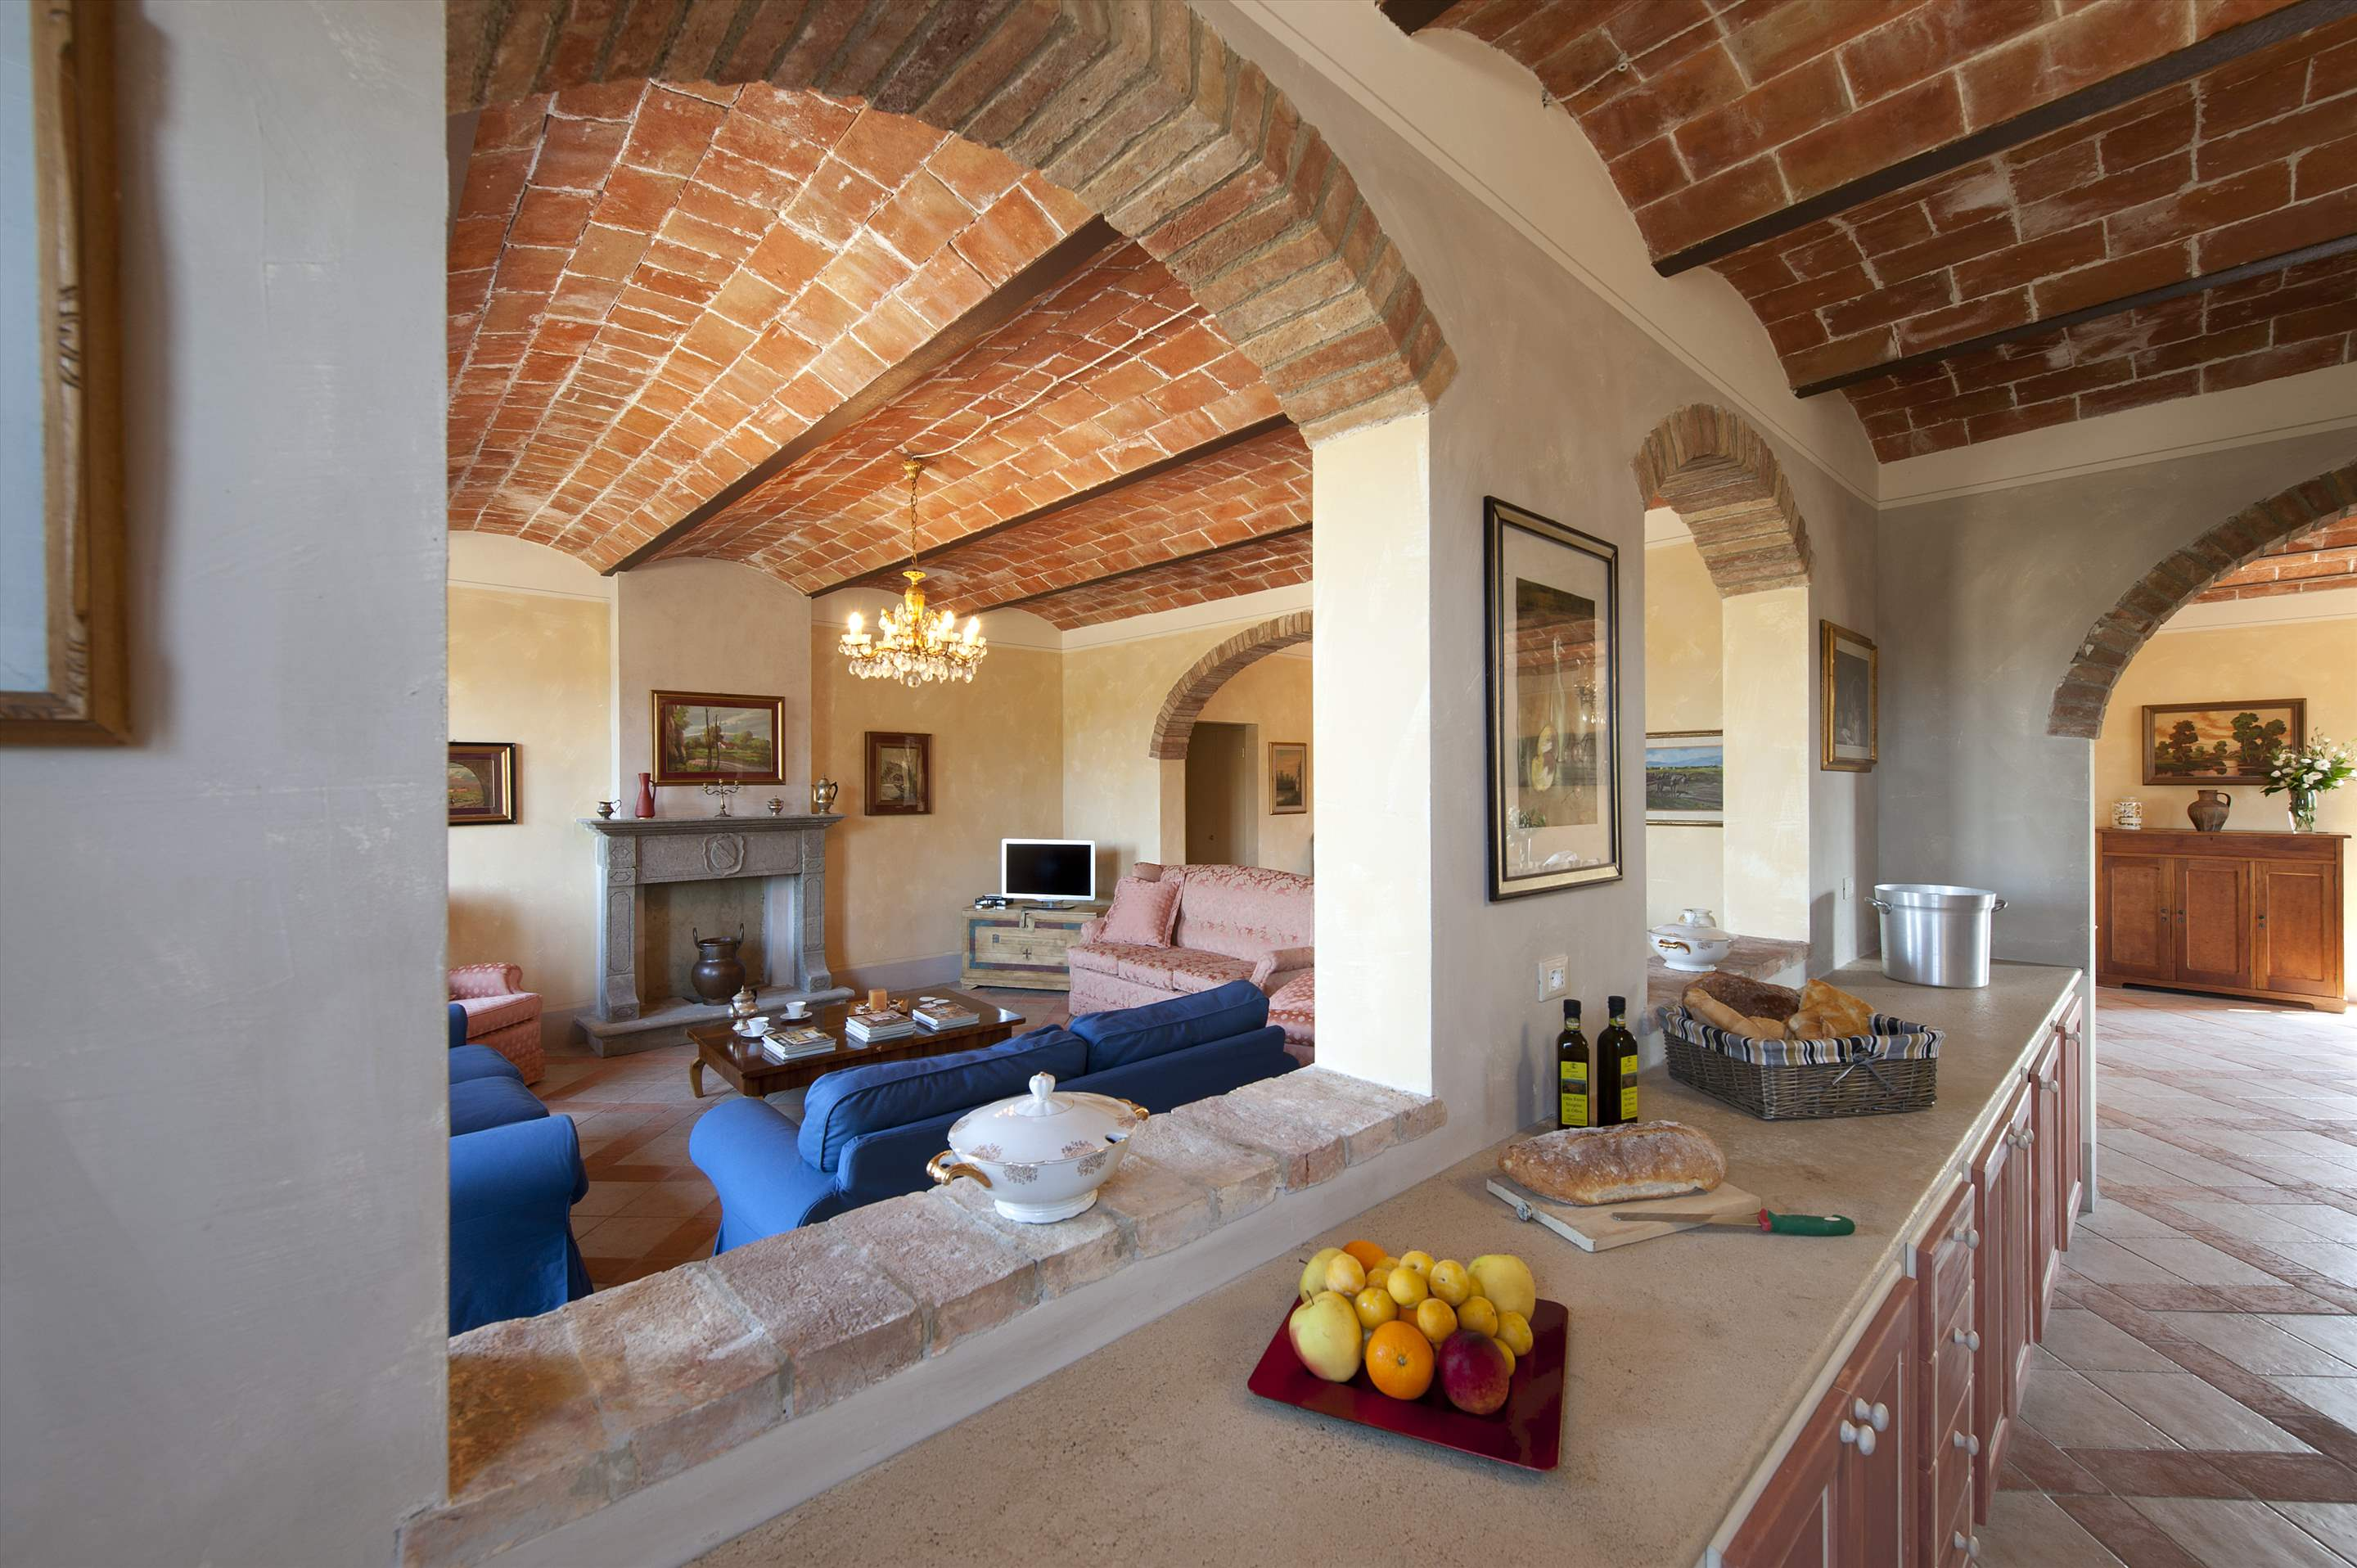 Podere Di Collina, First Floor, 4 bedroom villa in Tuscany Coast, Tuscany Photo #7